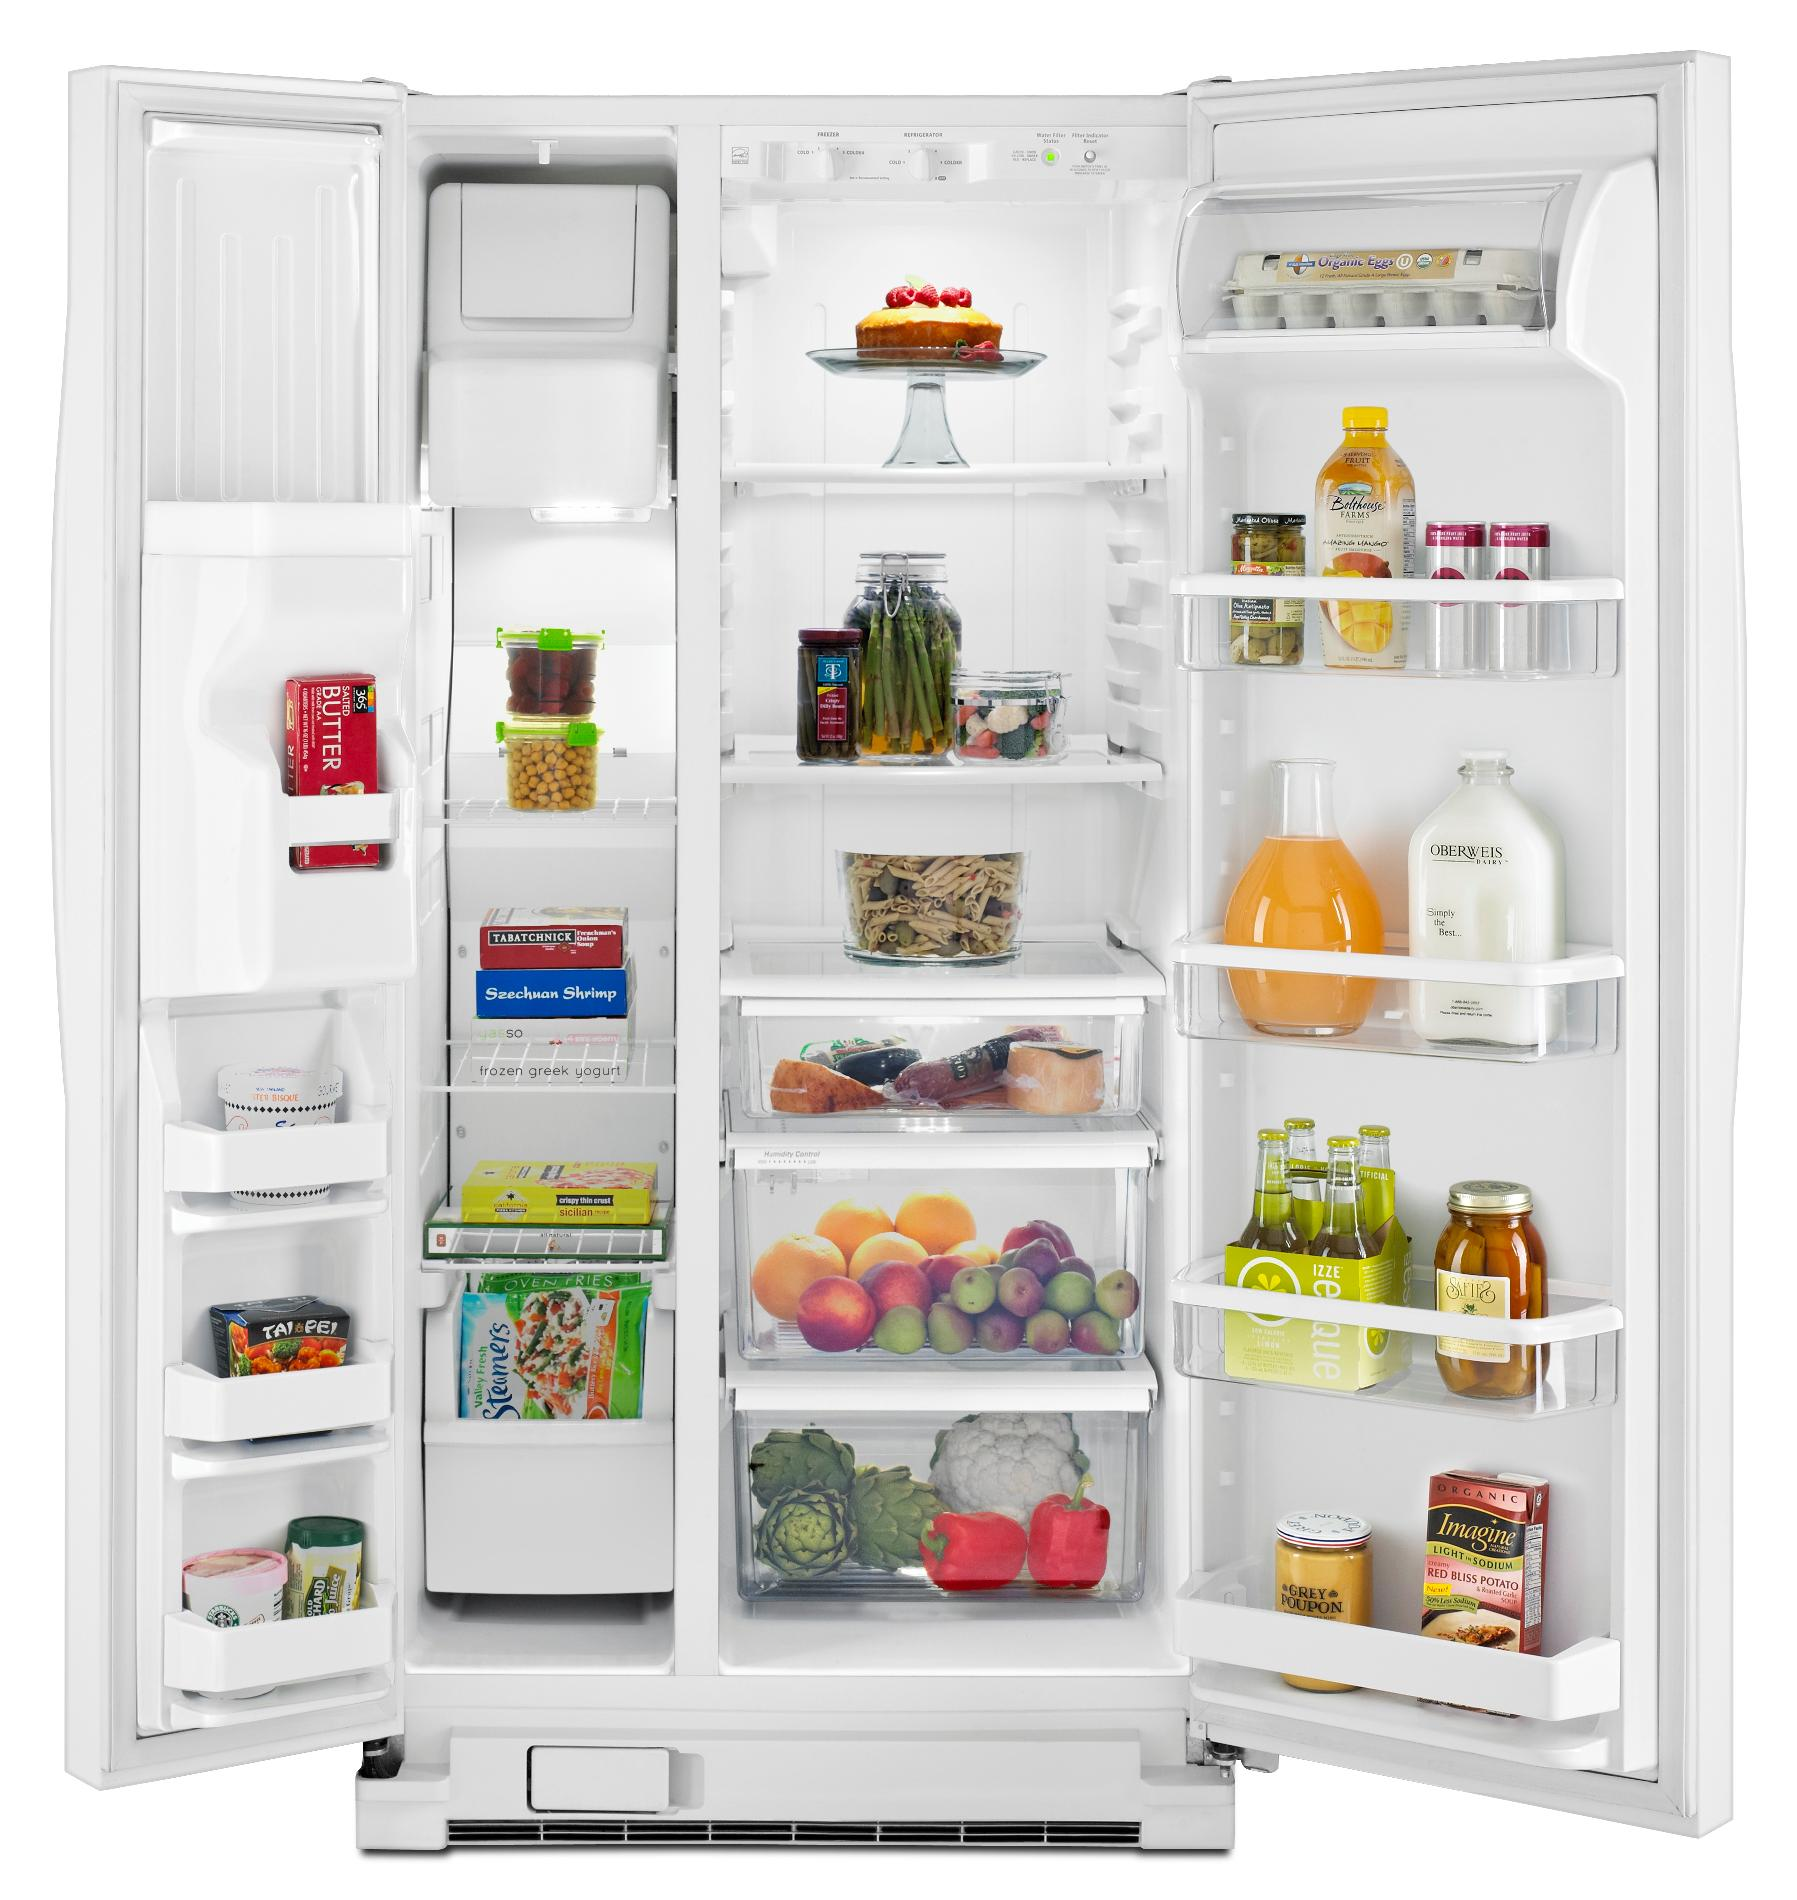 Whirlpool 22.0 cu. ft. Side-by-Side Refrigerator w/ Accu-Chill™ - White